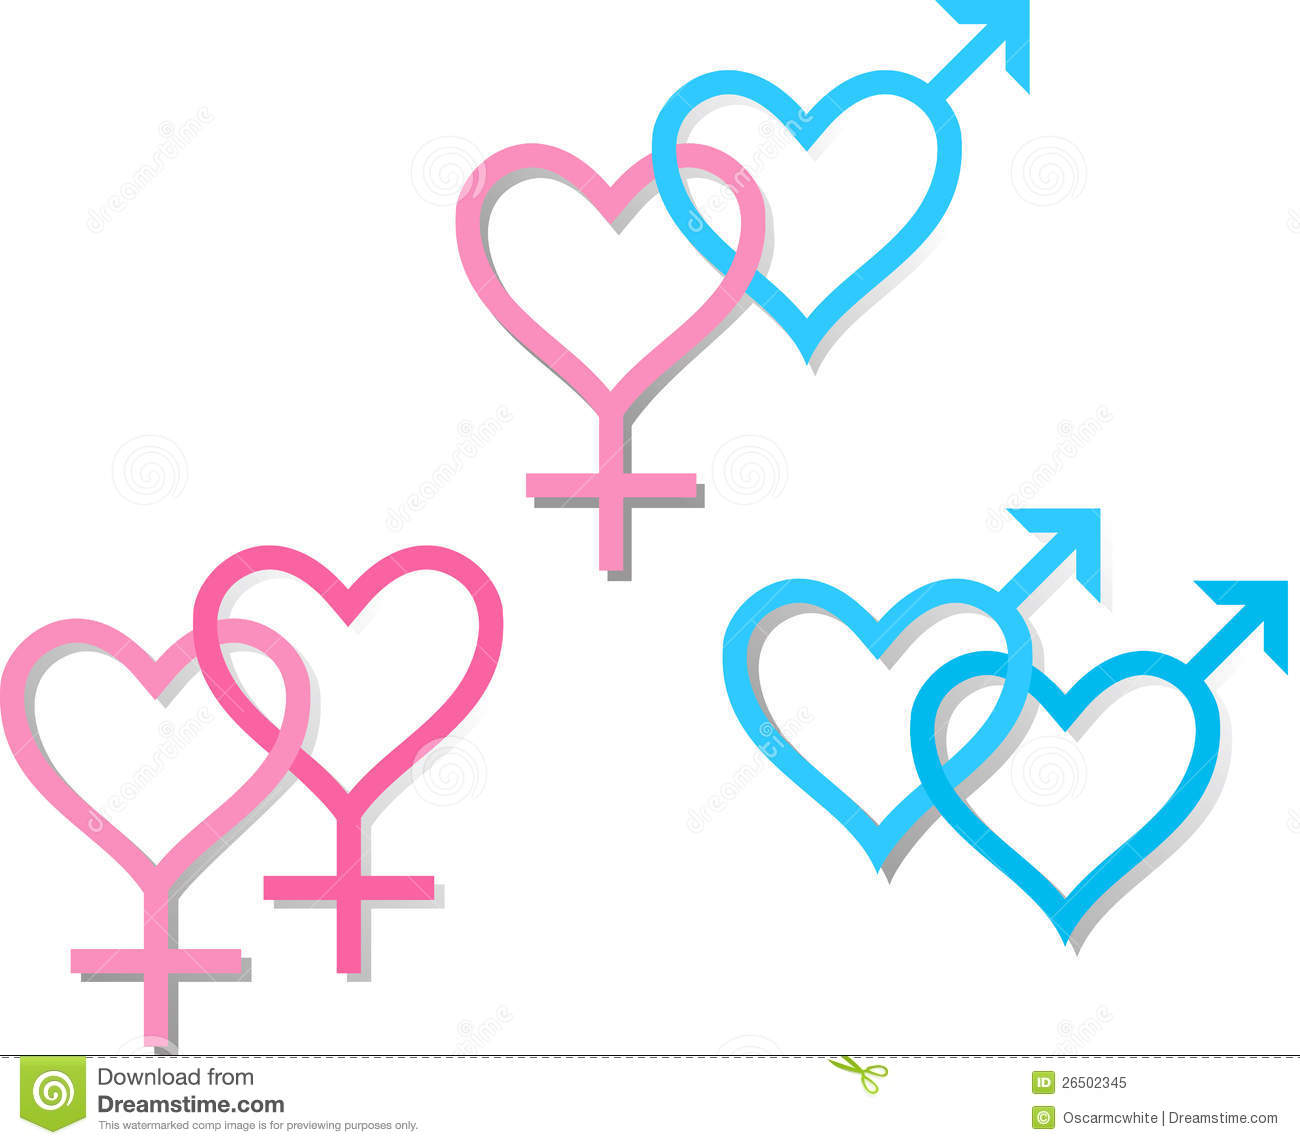 Symbols Of Sexual Orientation Royalty Free Stock Photo Image 26502345